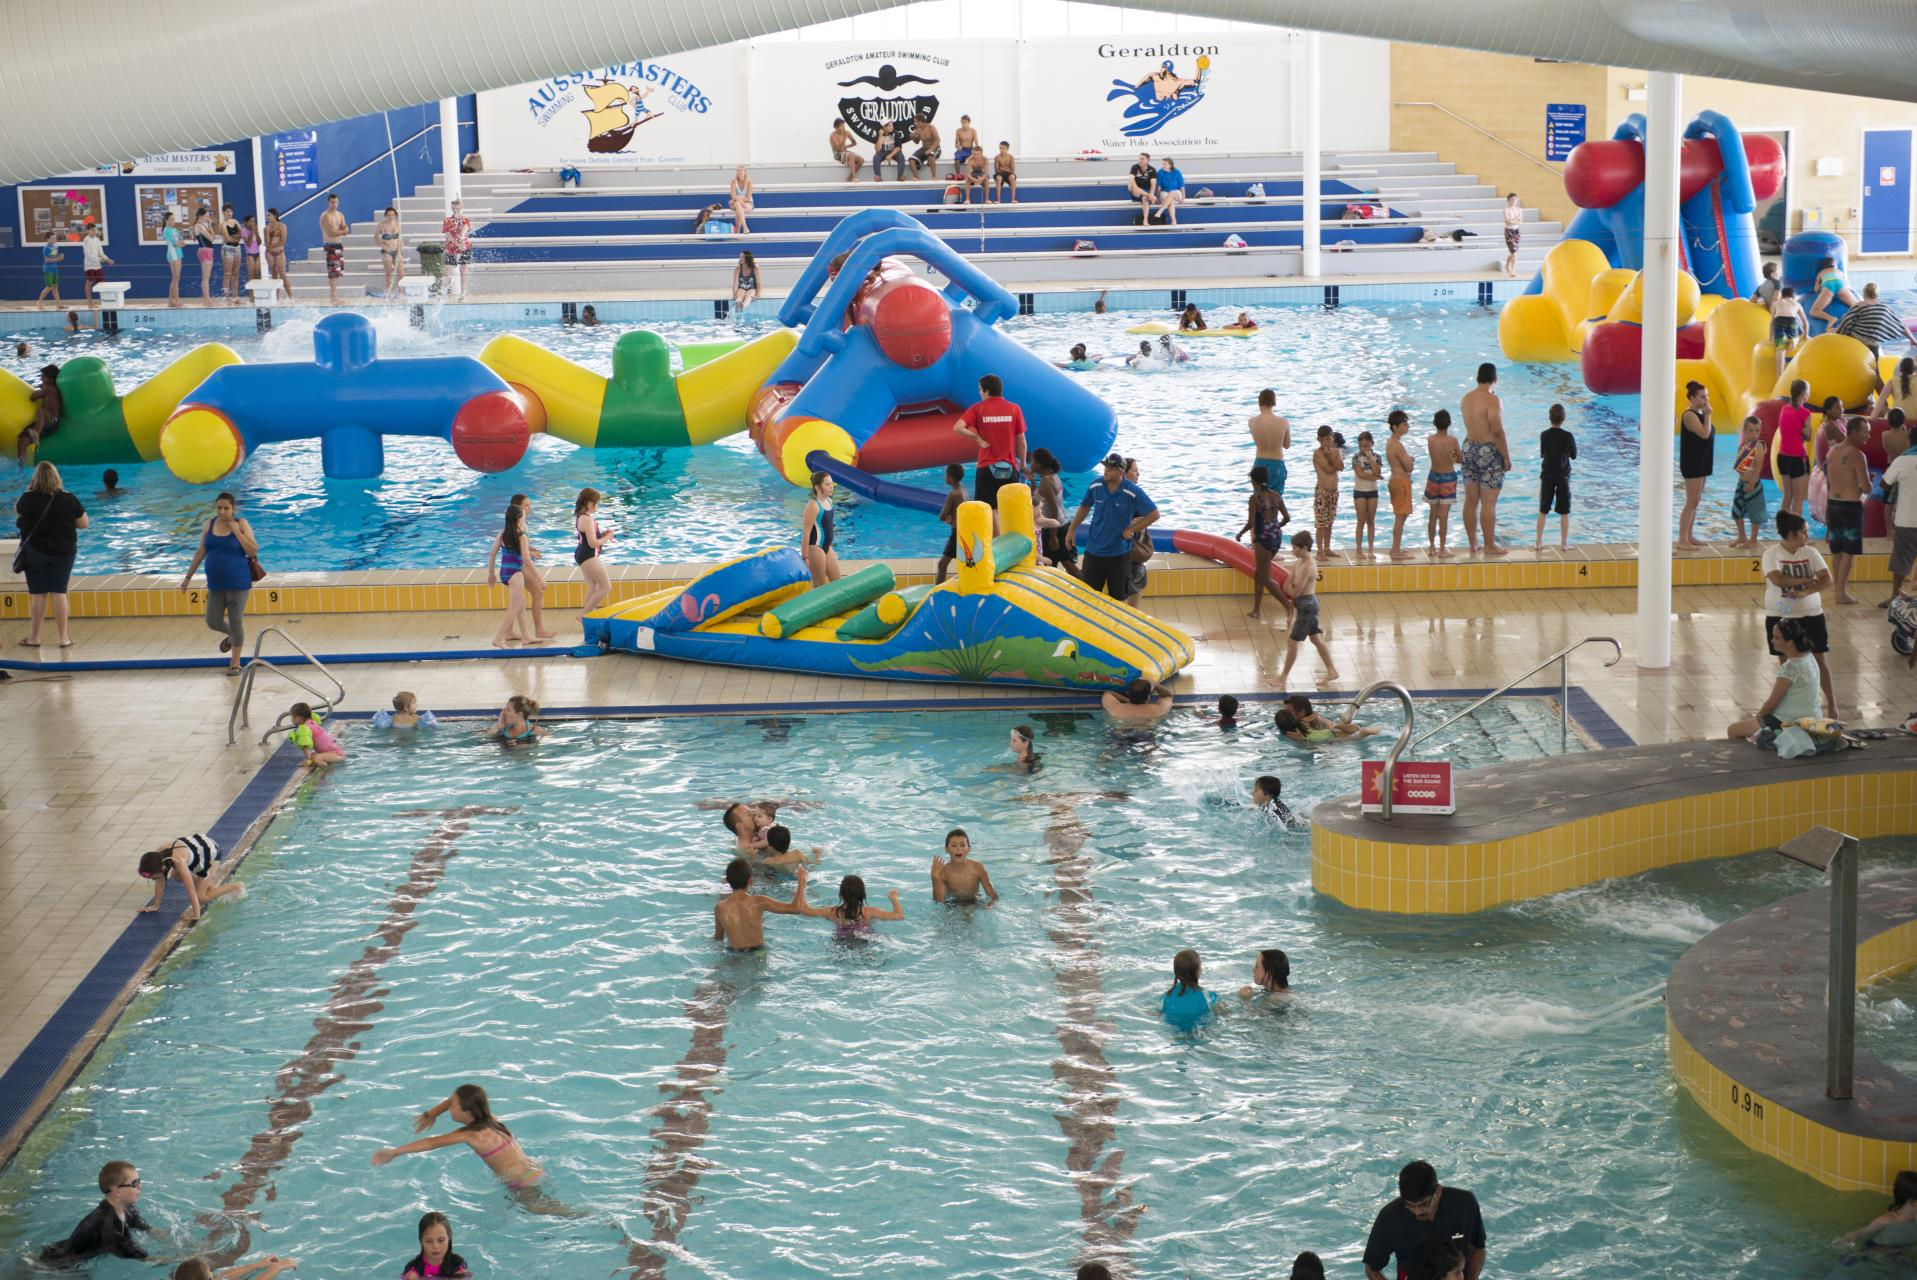 Annual Family Fun Day returns to Aquarena